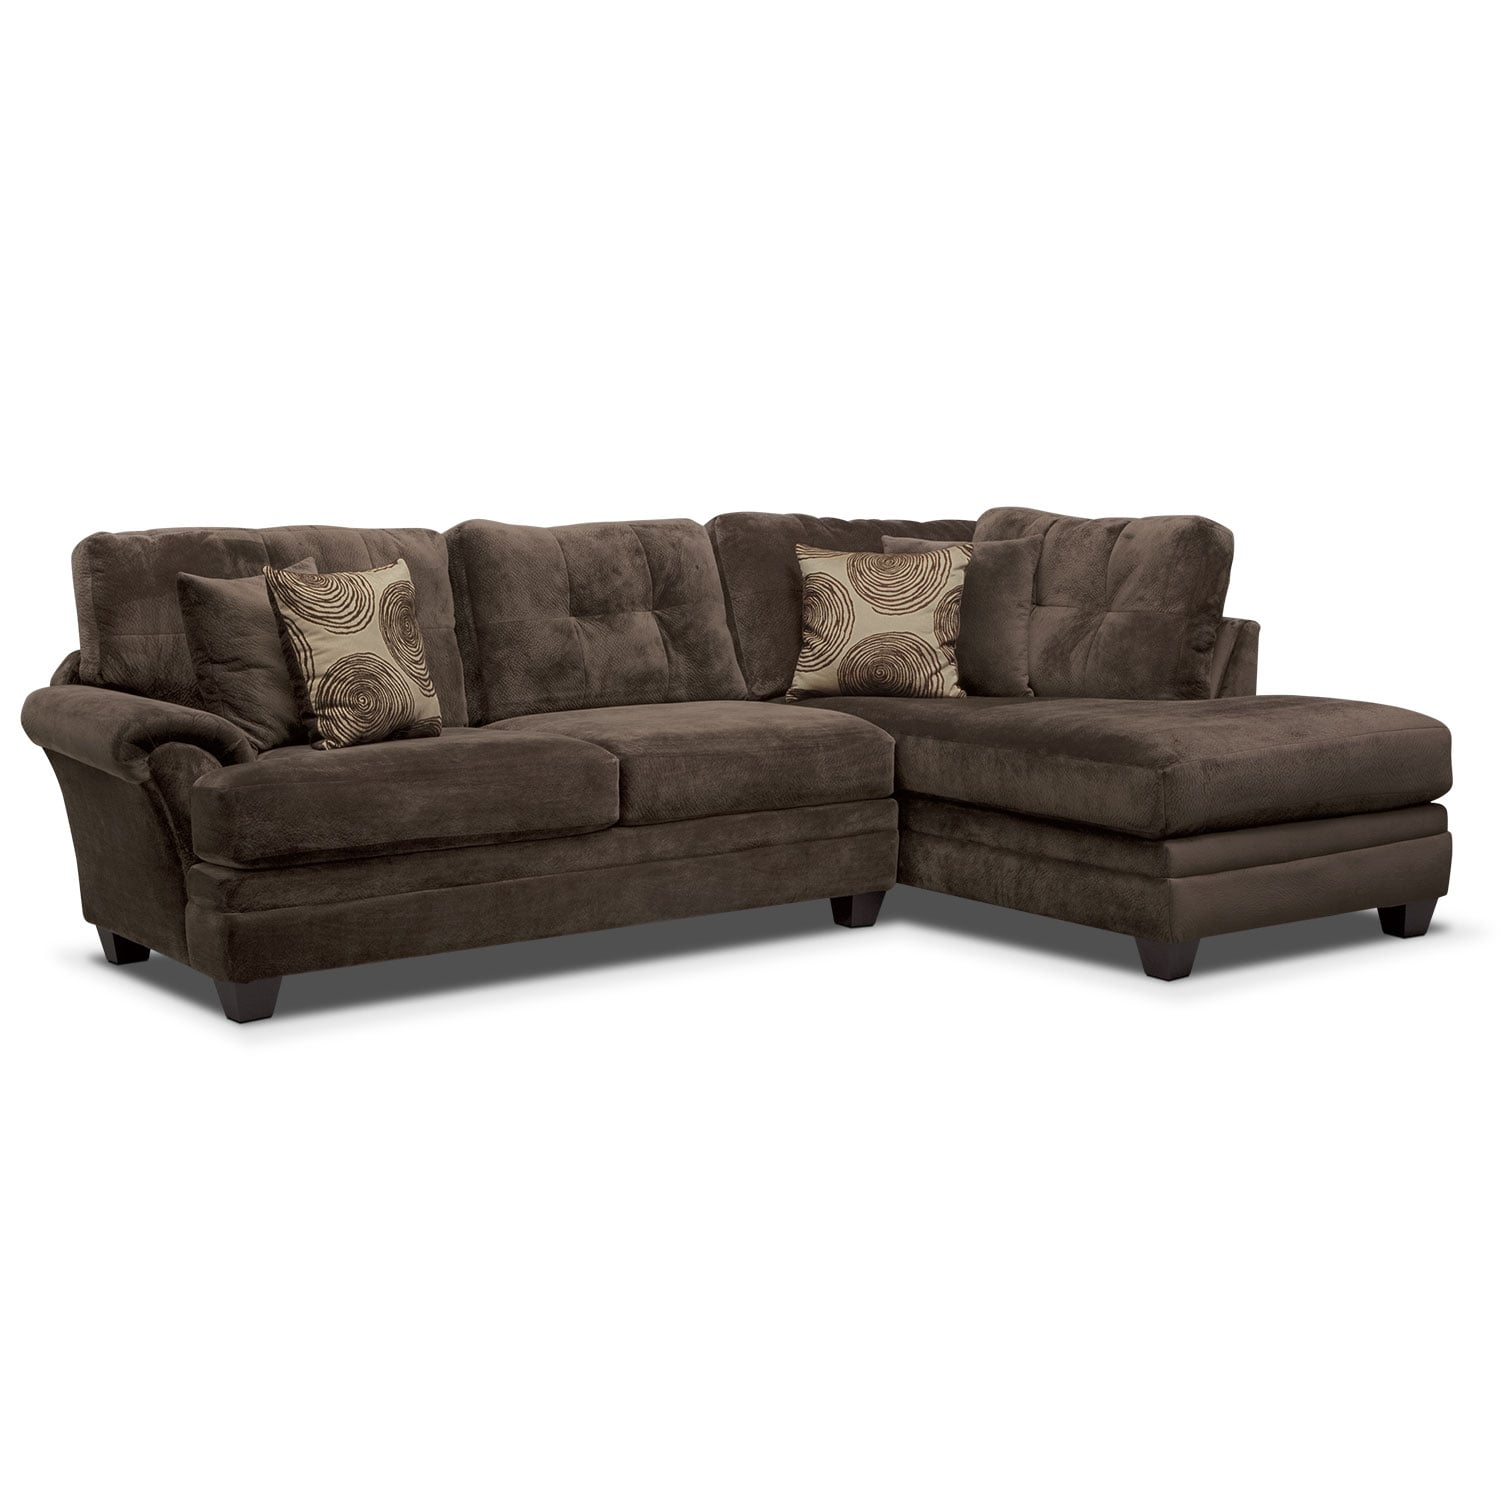 Cordoba Chocolate II 2 Pc. Sectional